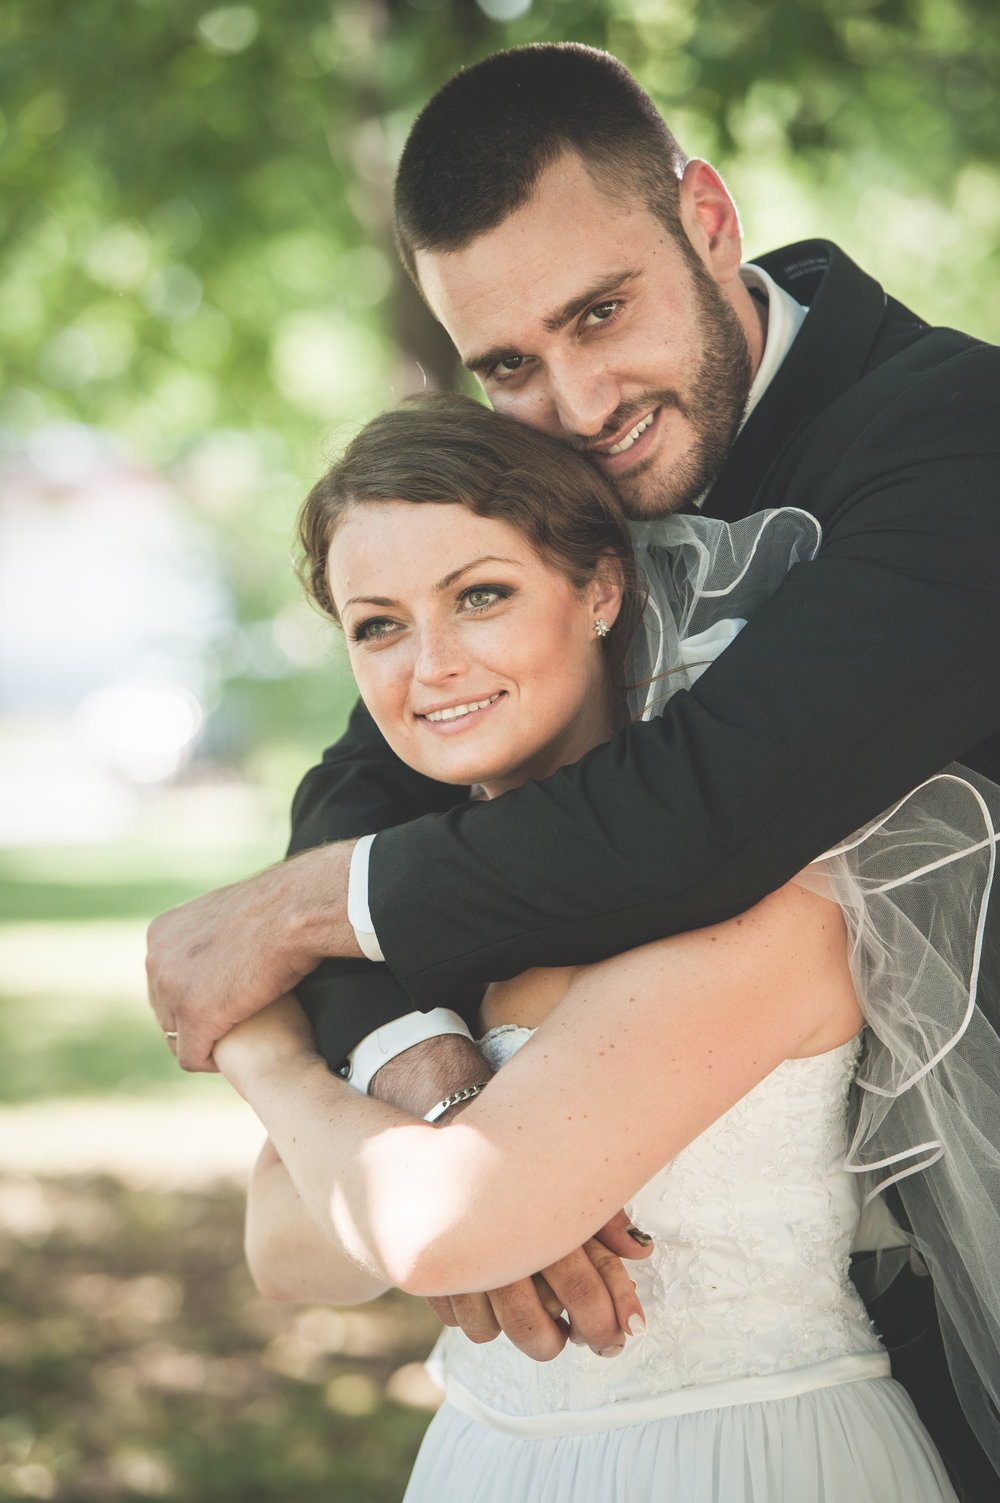 Marriage_Dom&Eli_2015_renrob©-101.jpg